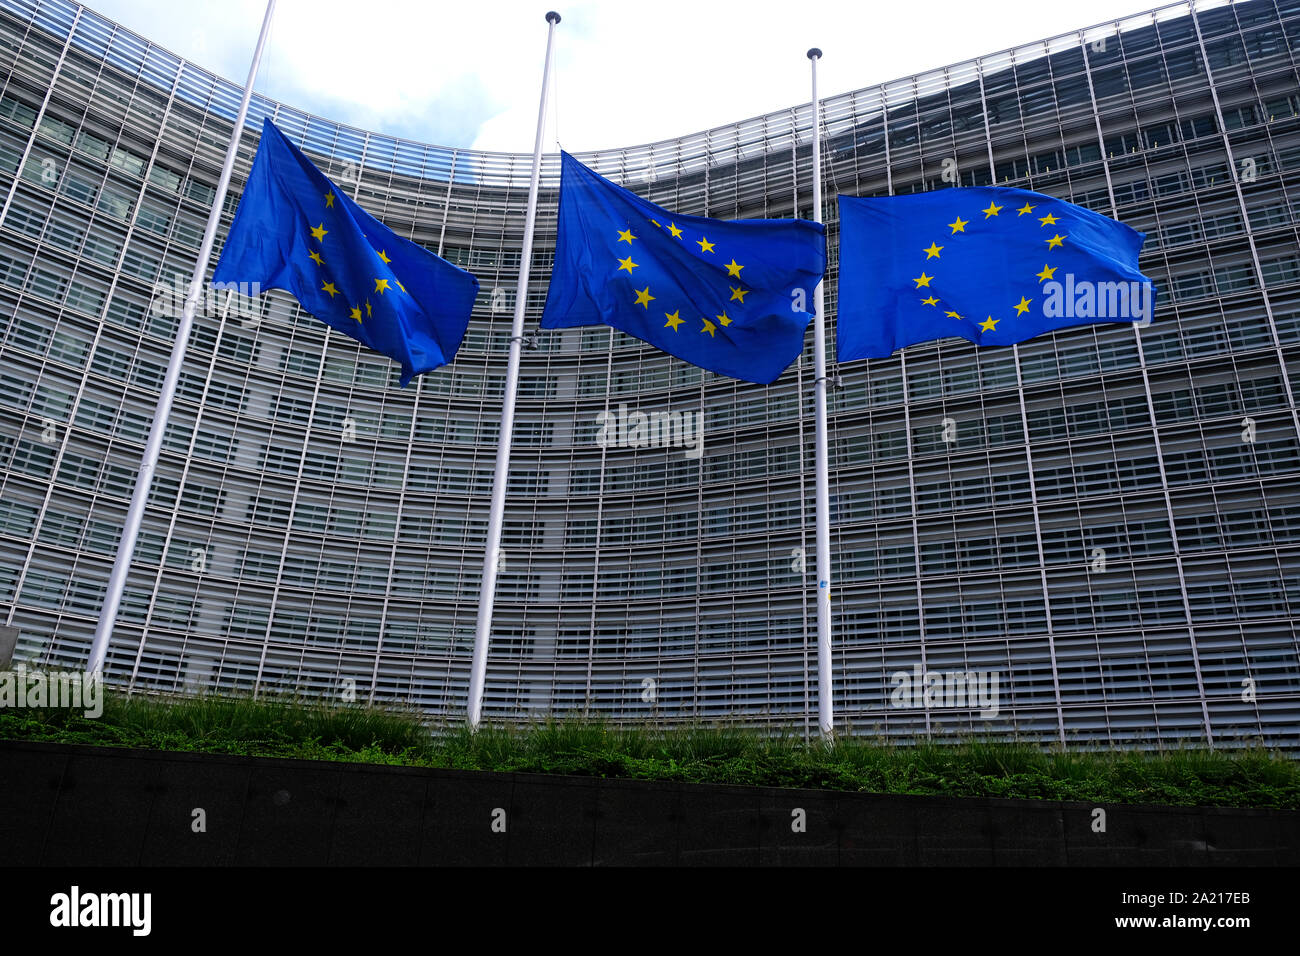 Brussels, Belgium. 30th Oct. 2019.  The European Union flags fly at half-mast as a tribute to former French President Jacques Chirac in front of the European Commission building. Stock Photo